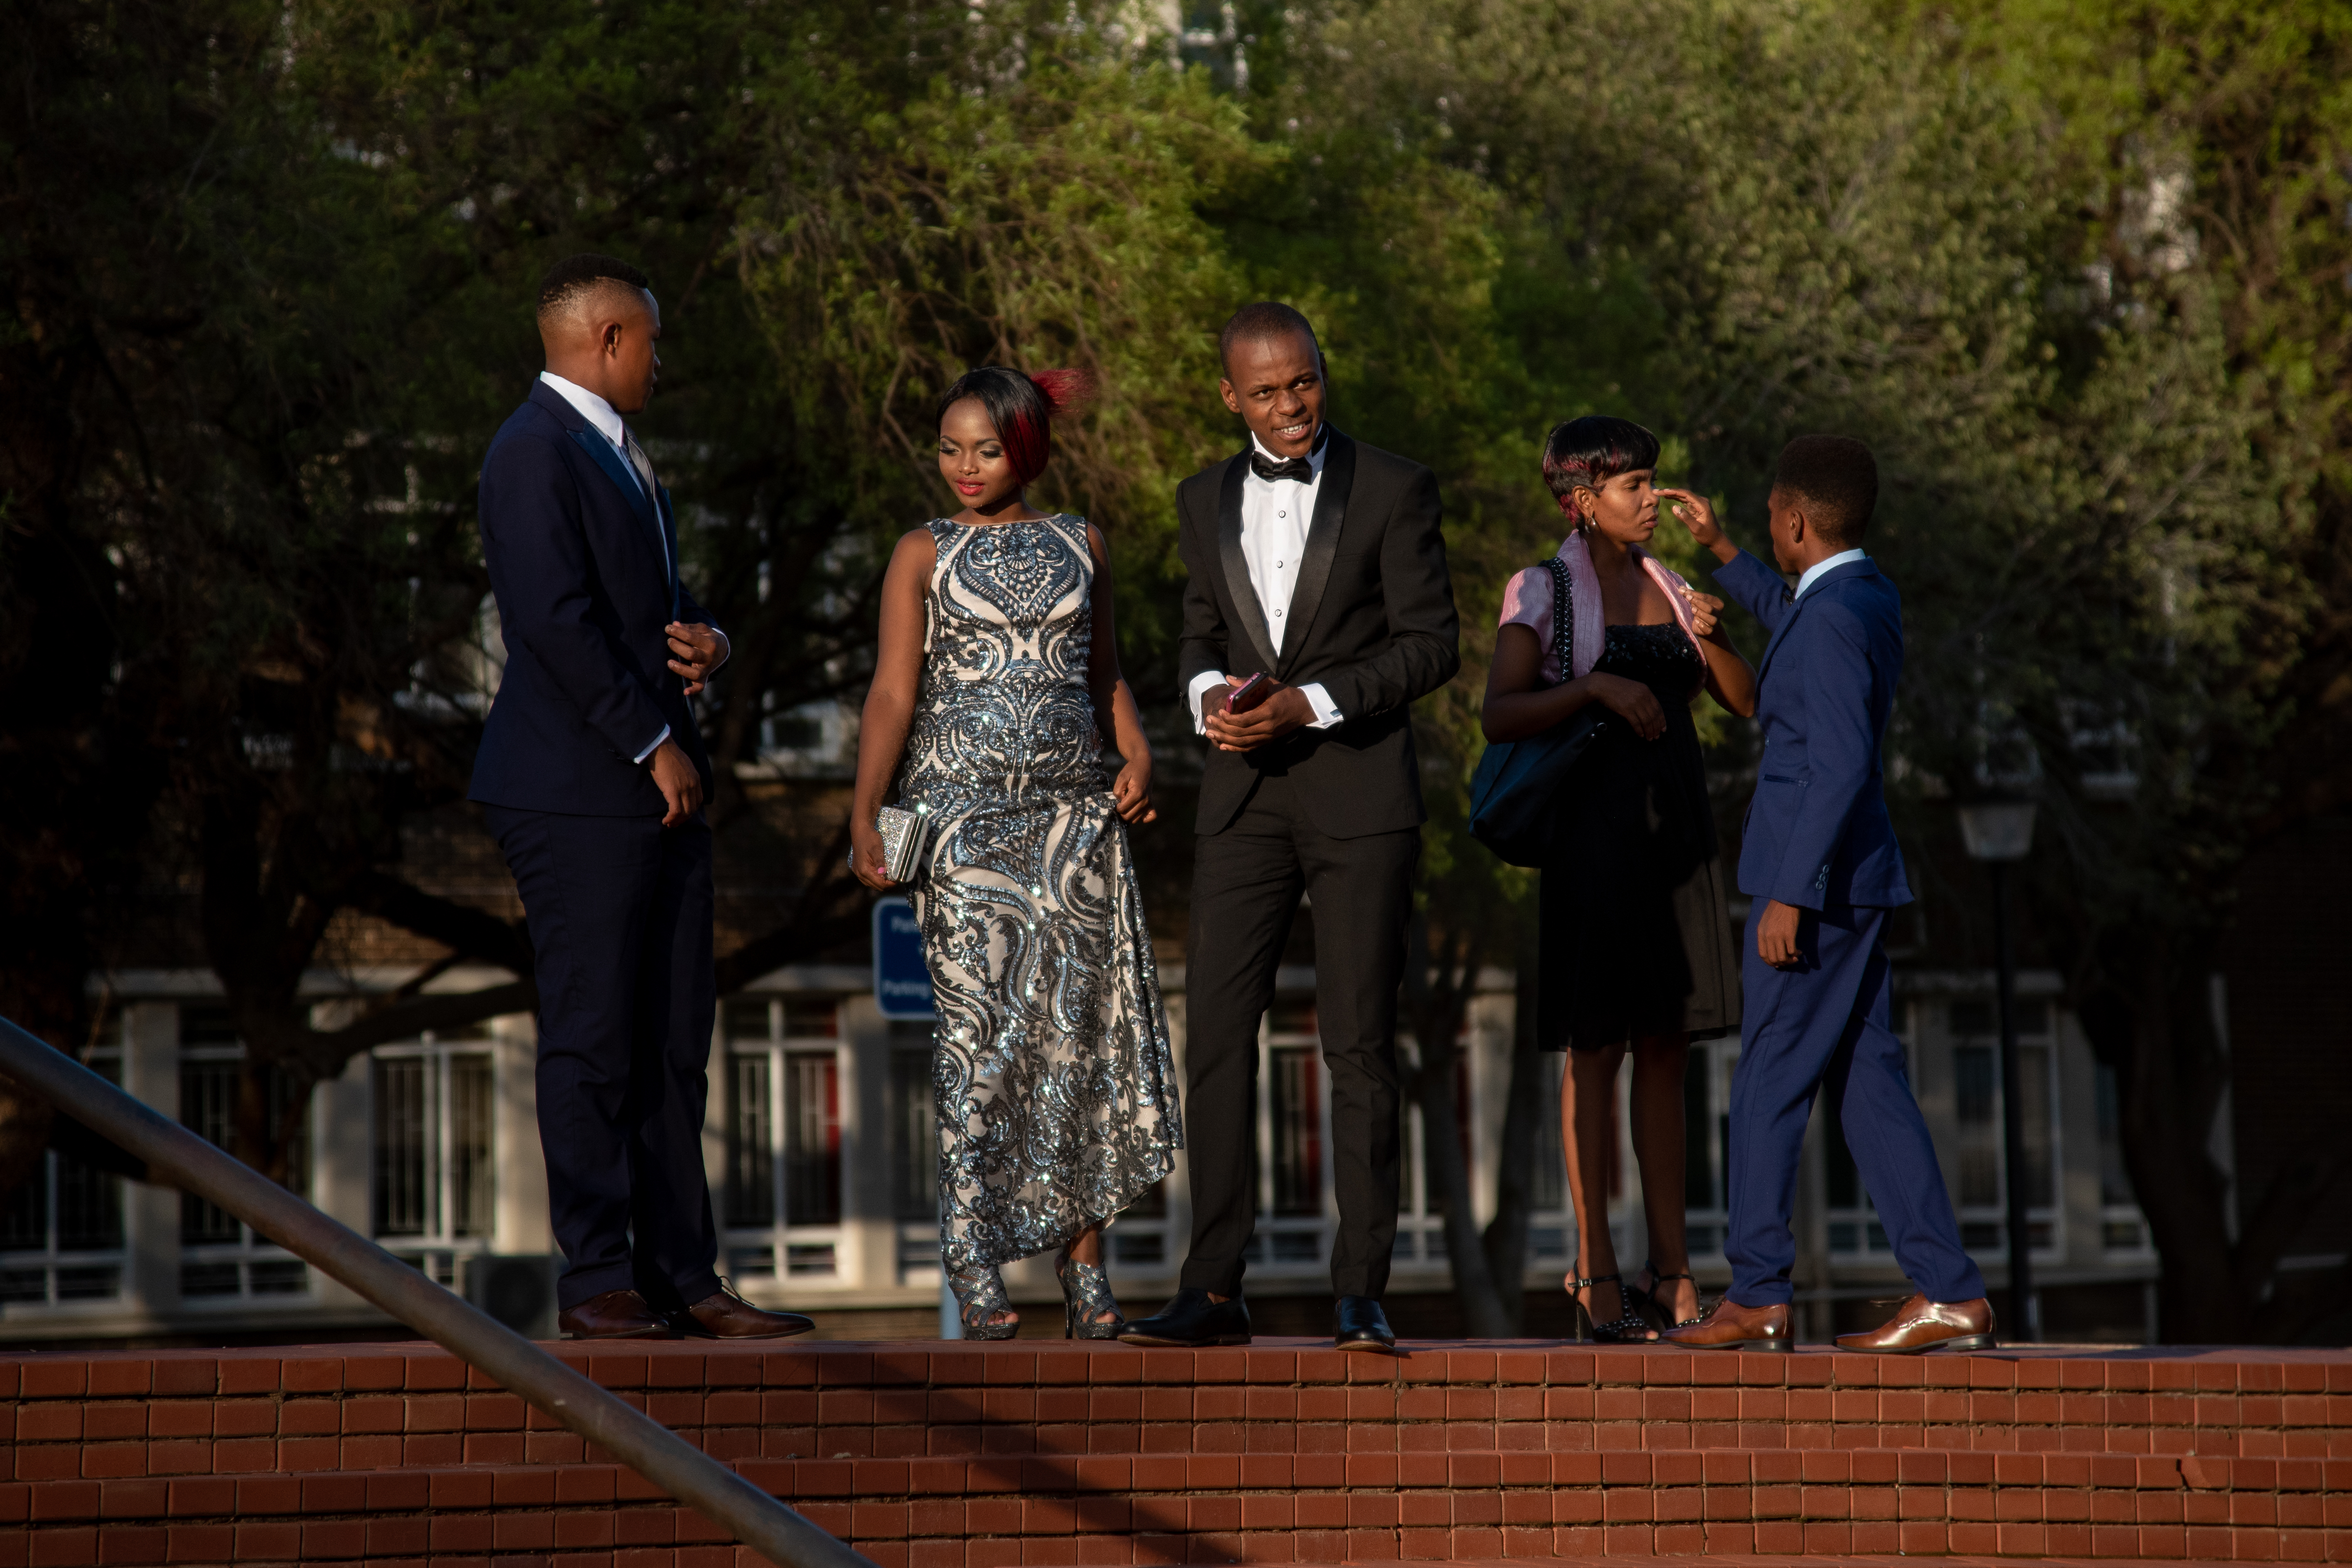 Guest arriving for the 2019 Star of Stars event on the UFS Bloemfontein Campus